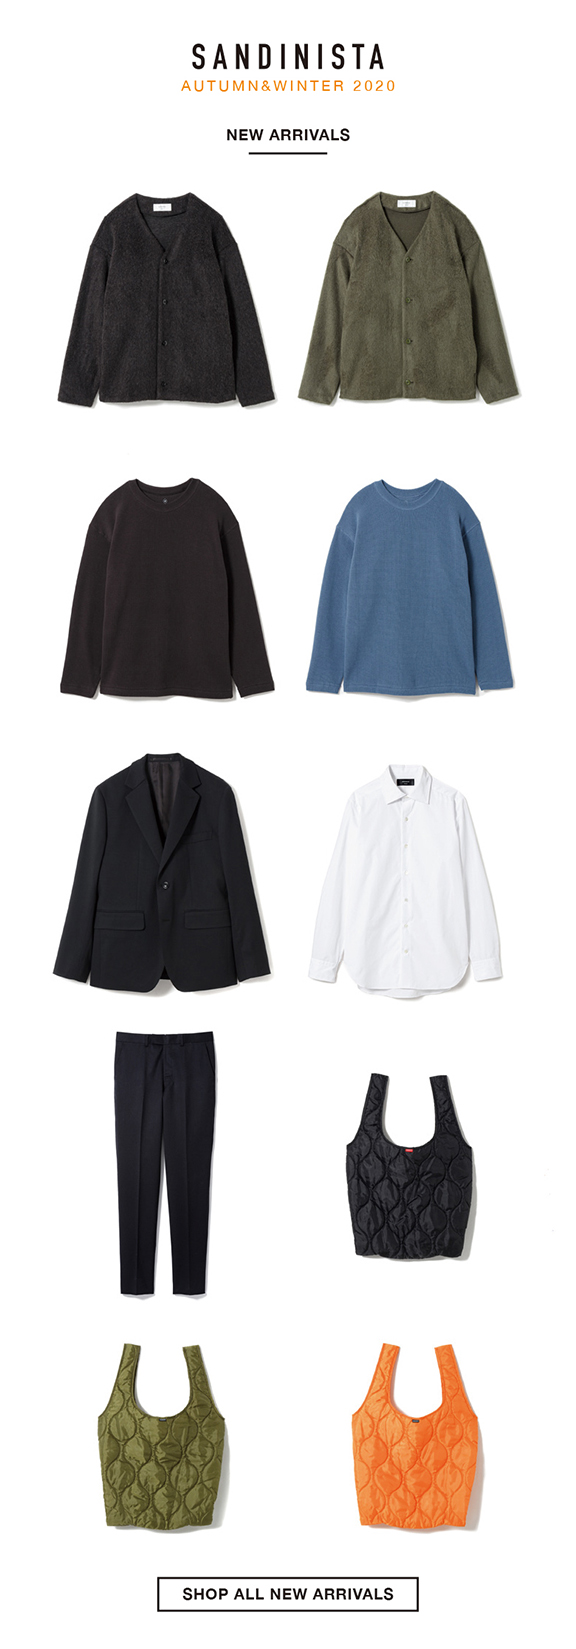 MAIL_NEWARRIVALS_AW20_2020.9.20_576